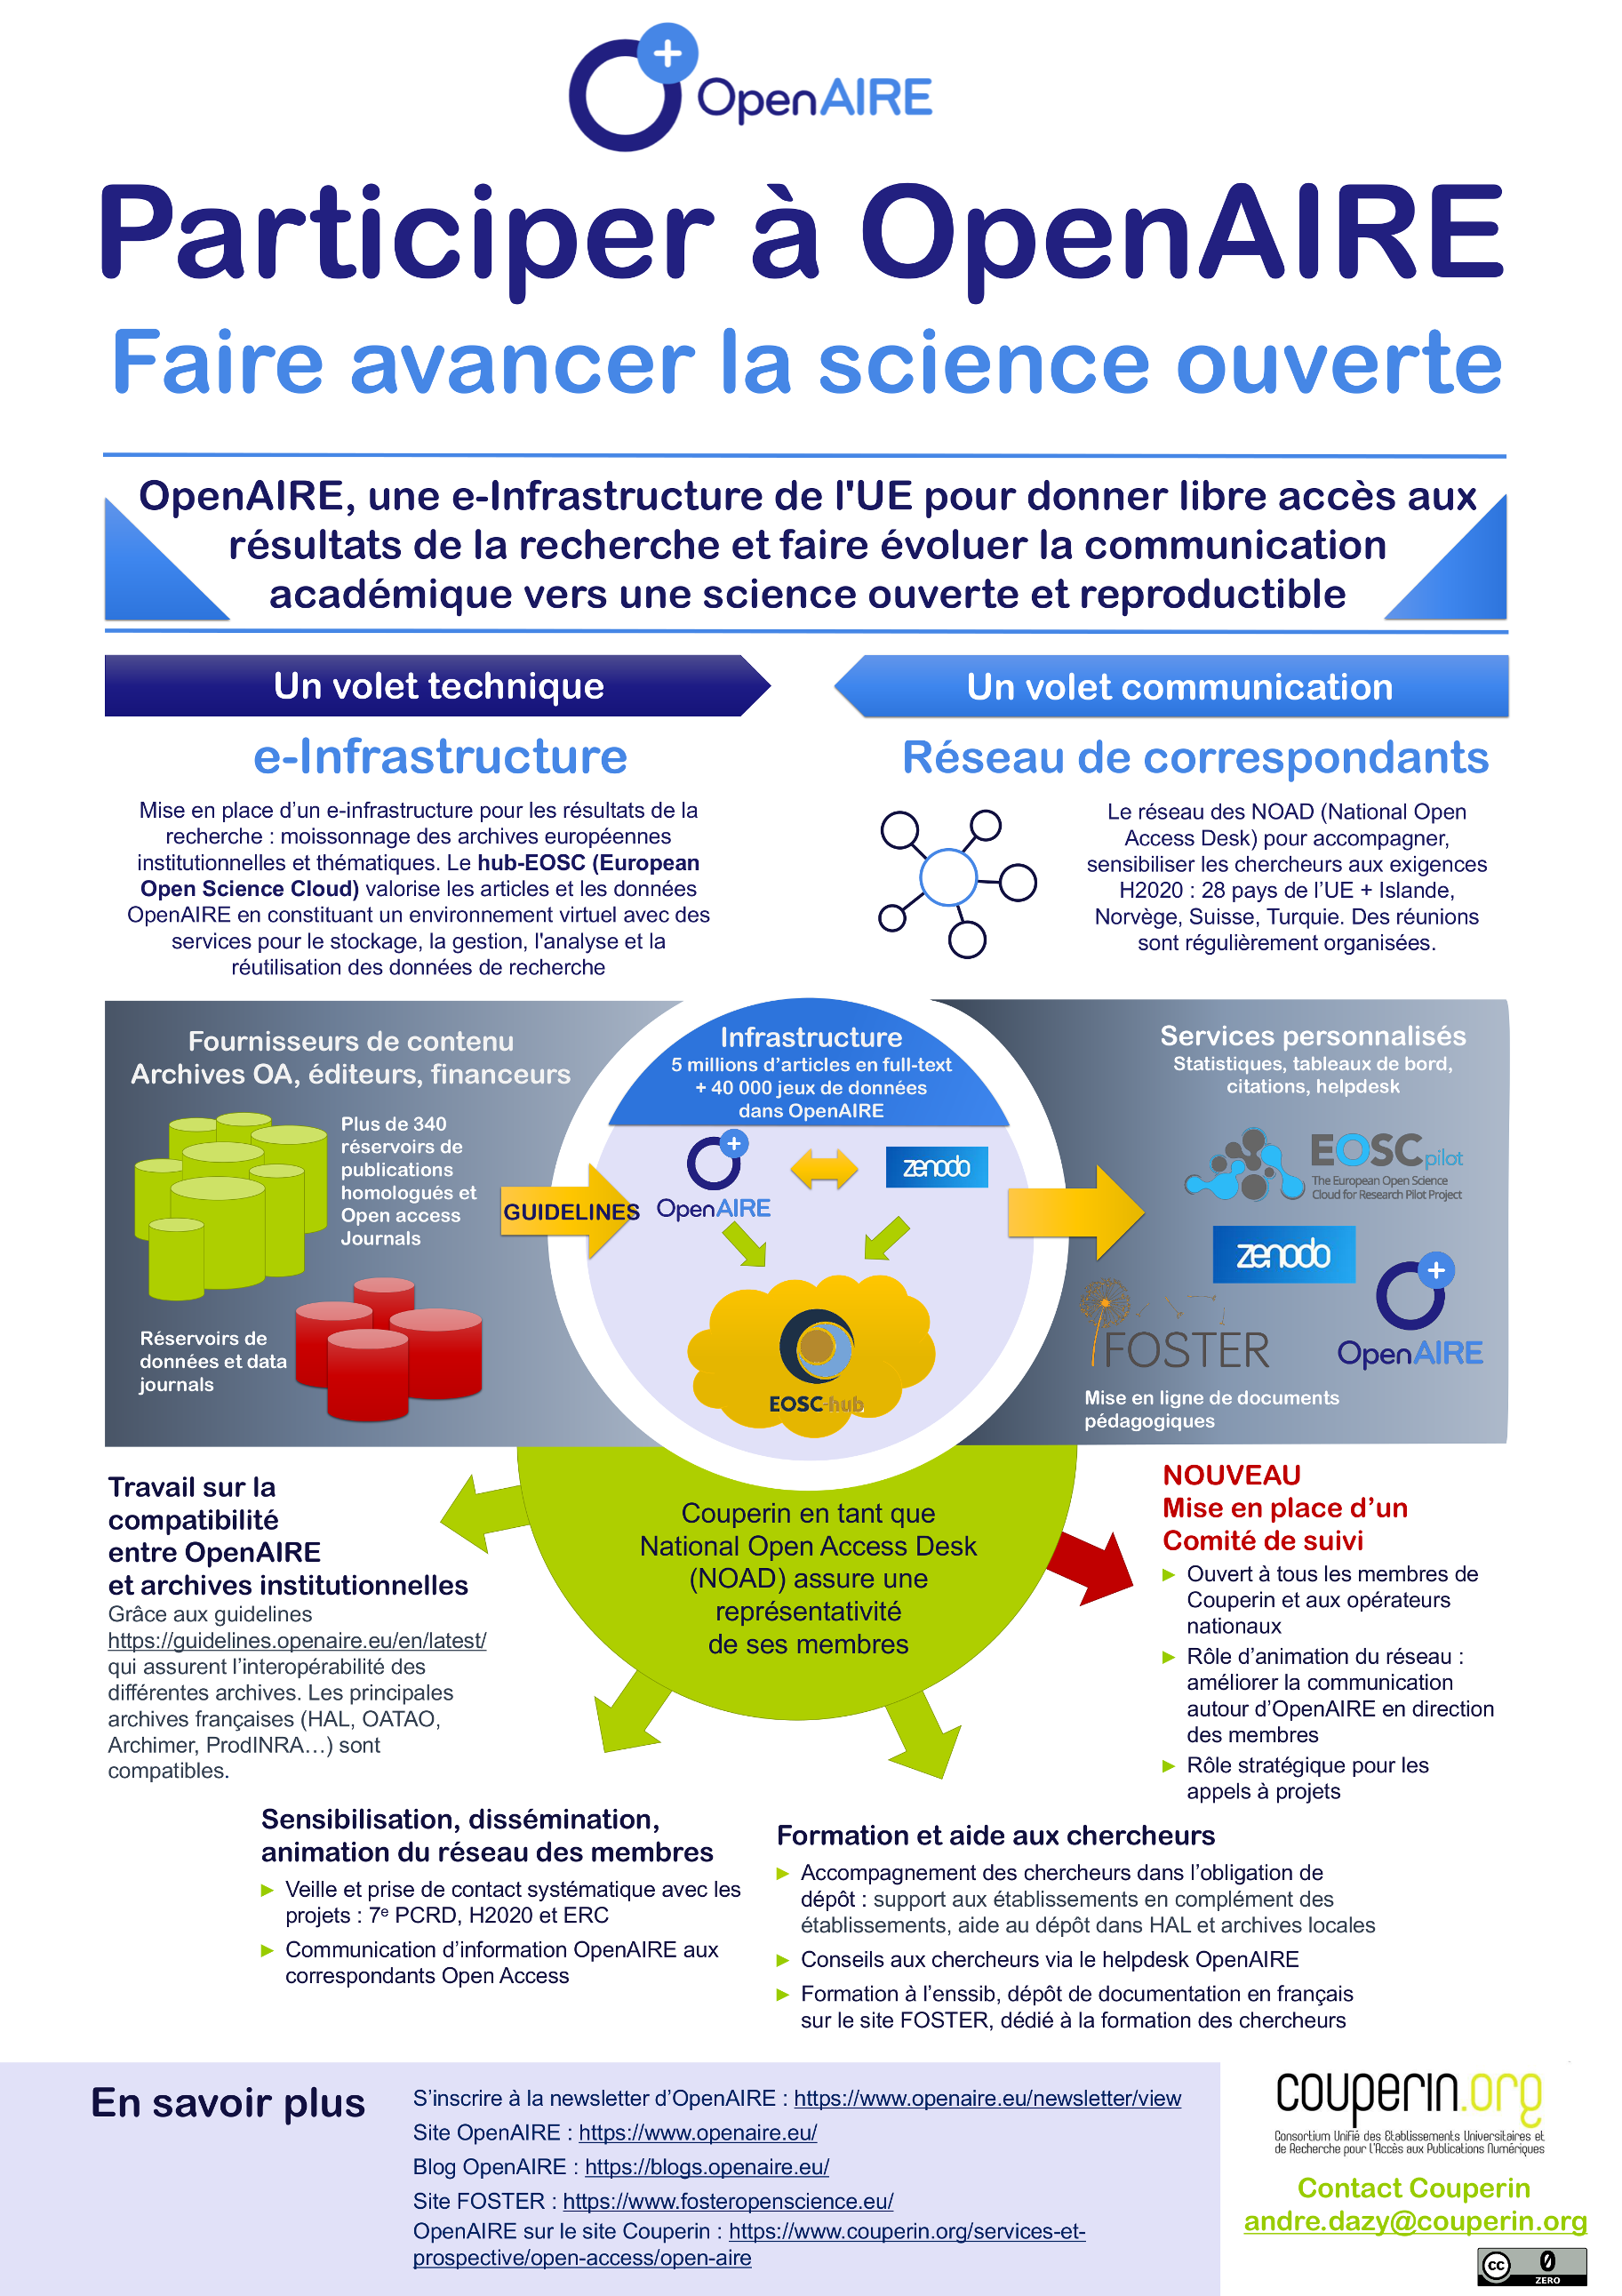 Poster Openaire petite taille